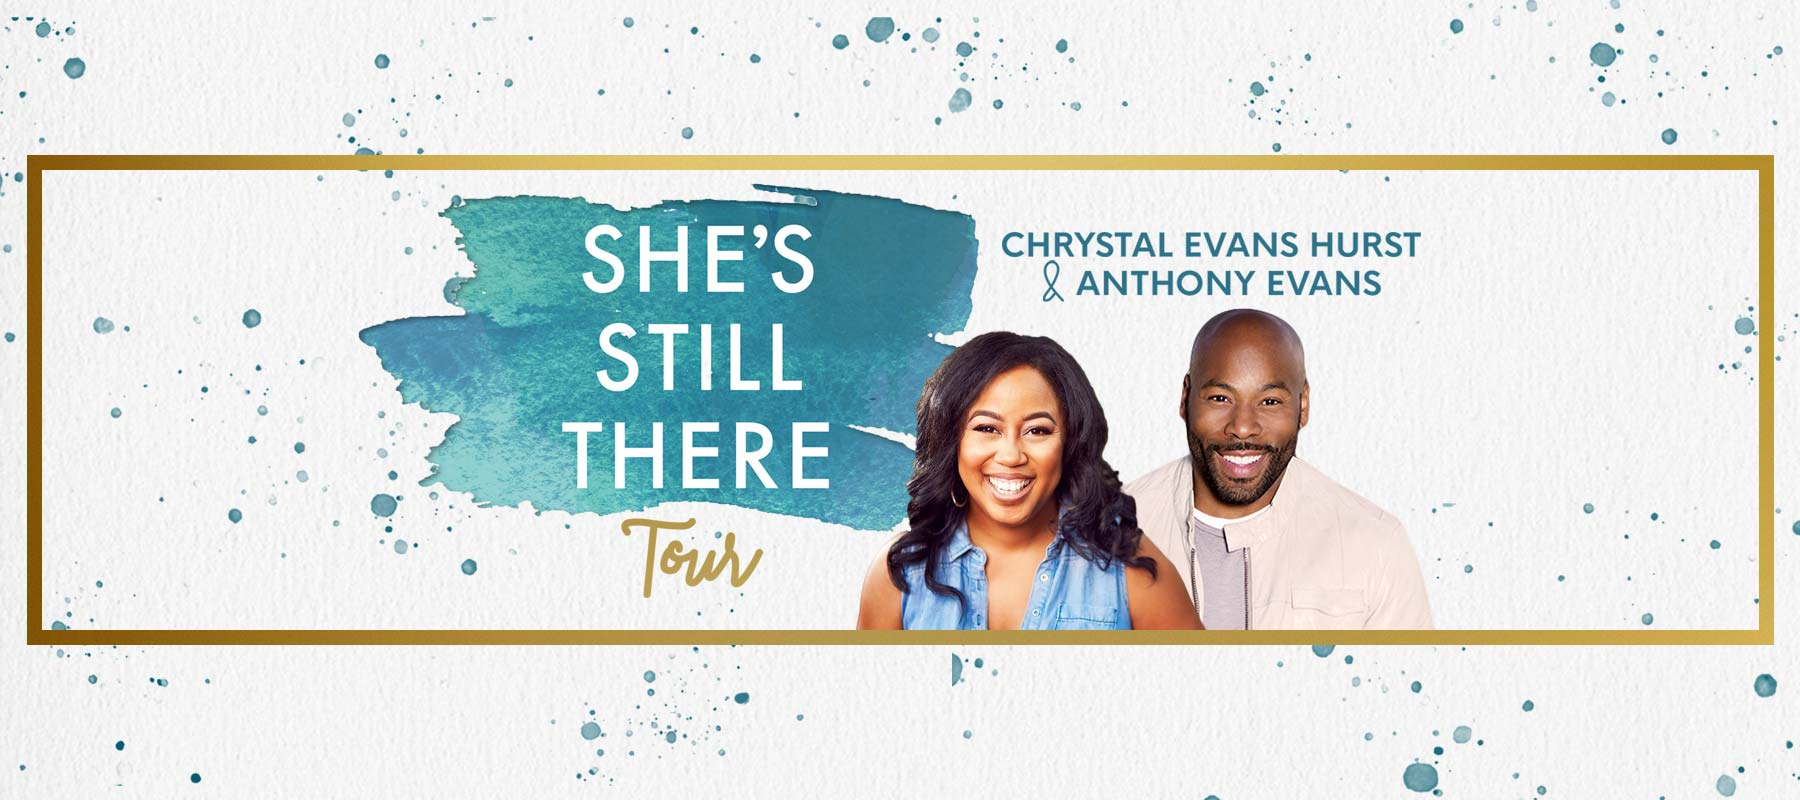 She's Still There Tour with Chrystal Evans Hurst and Anthony Evans – Brookhaven, MS logo